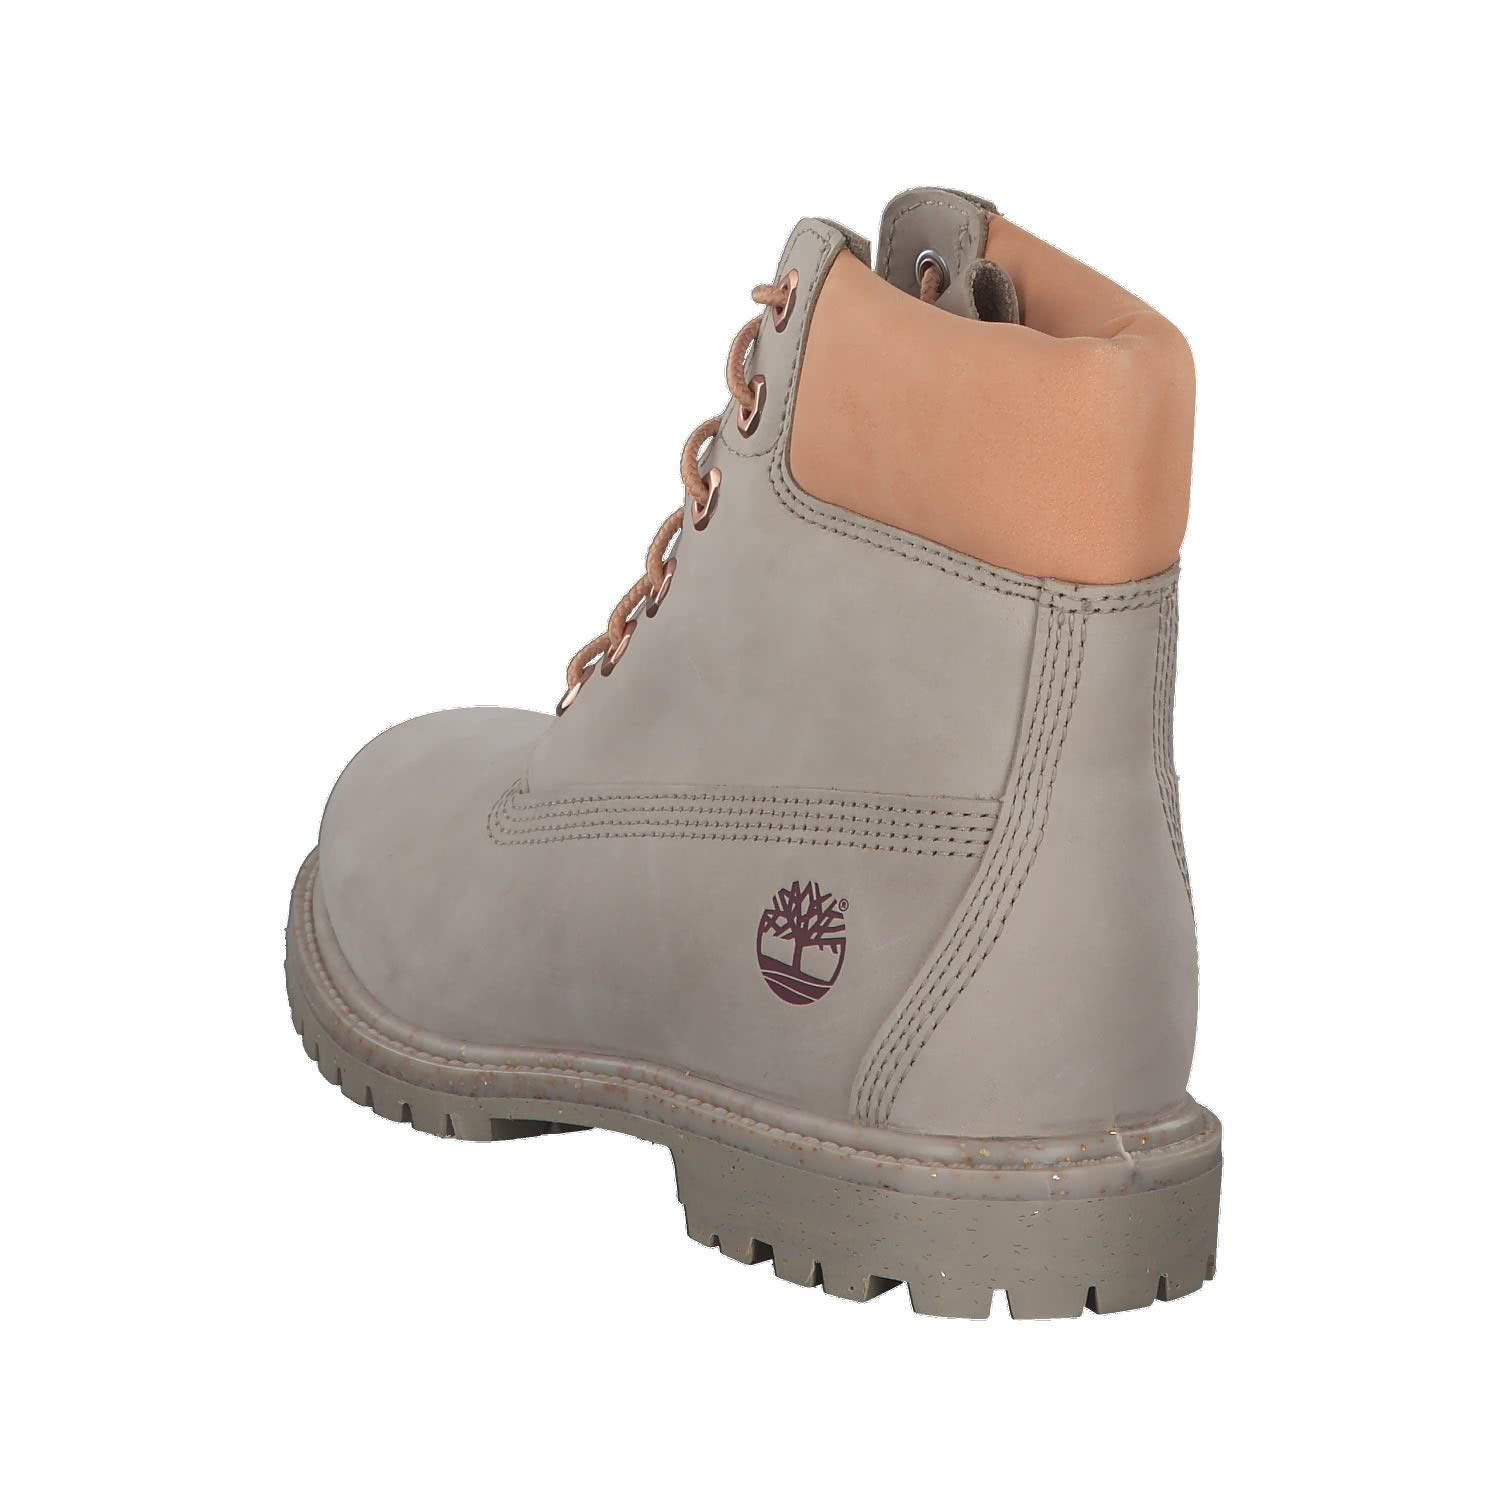 Timberland 6 inch Premium Boot W Chaussures Temps Libre